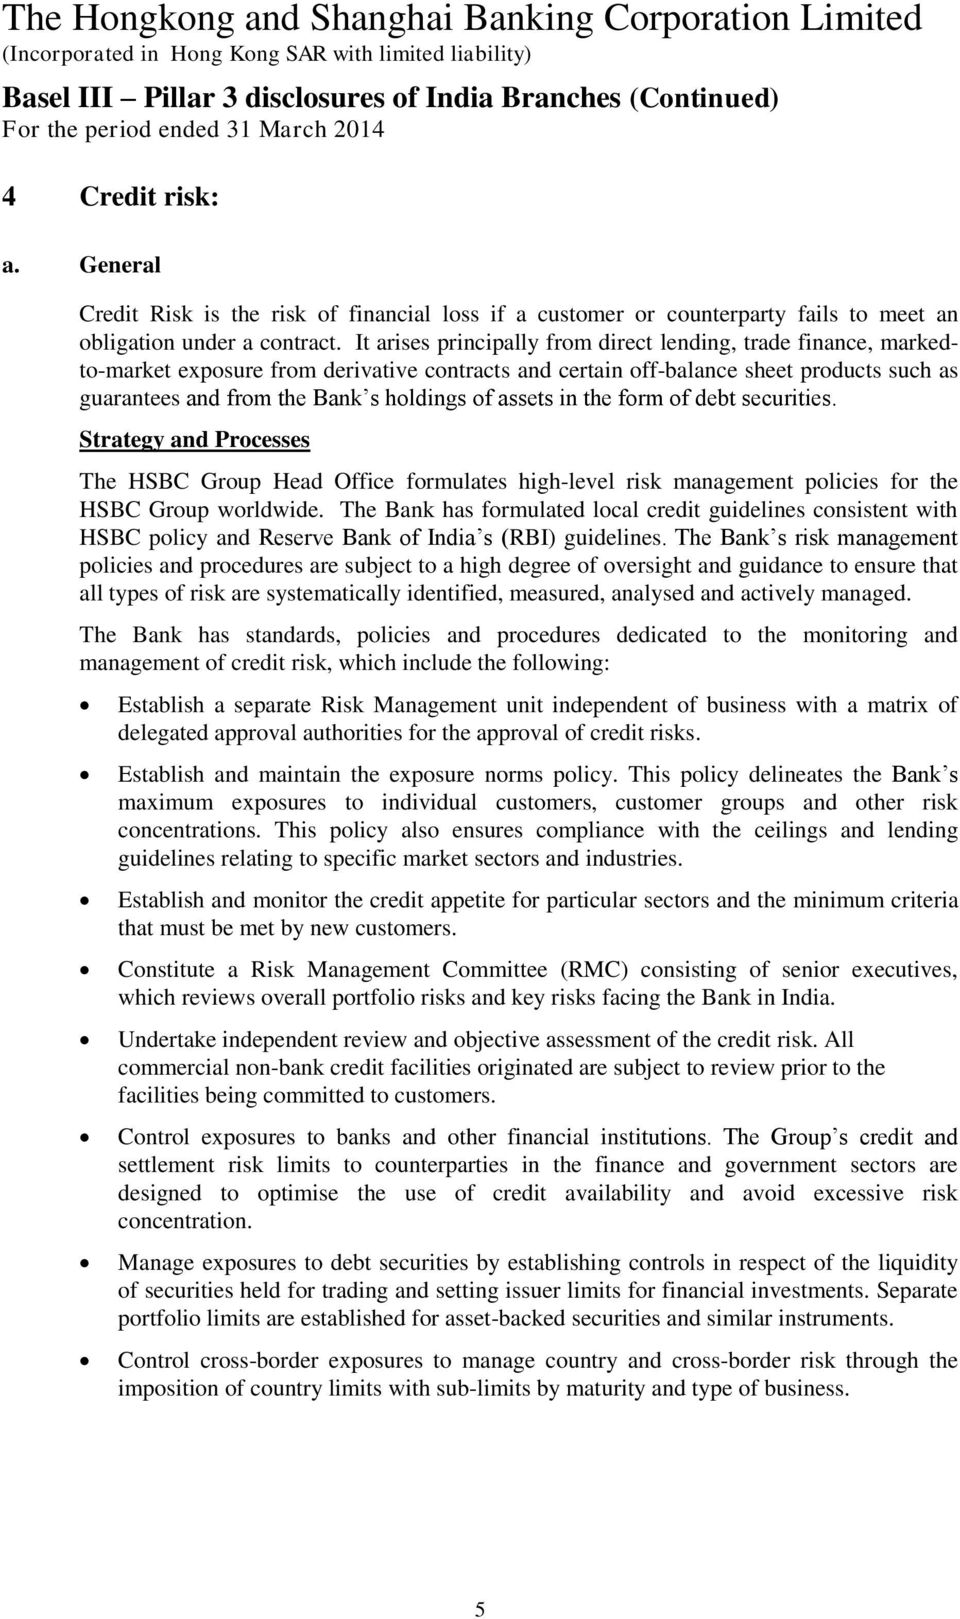 The Hongkong and Shanghai Banking Corporation Limited (Incorporated